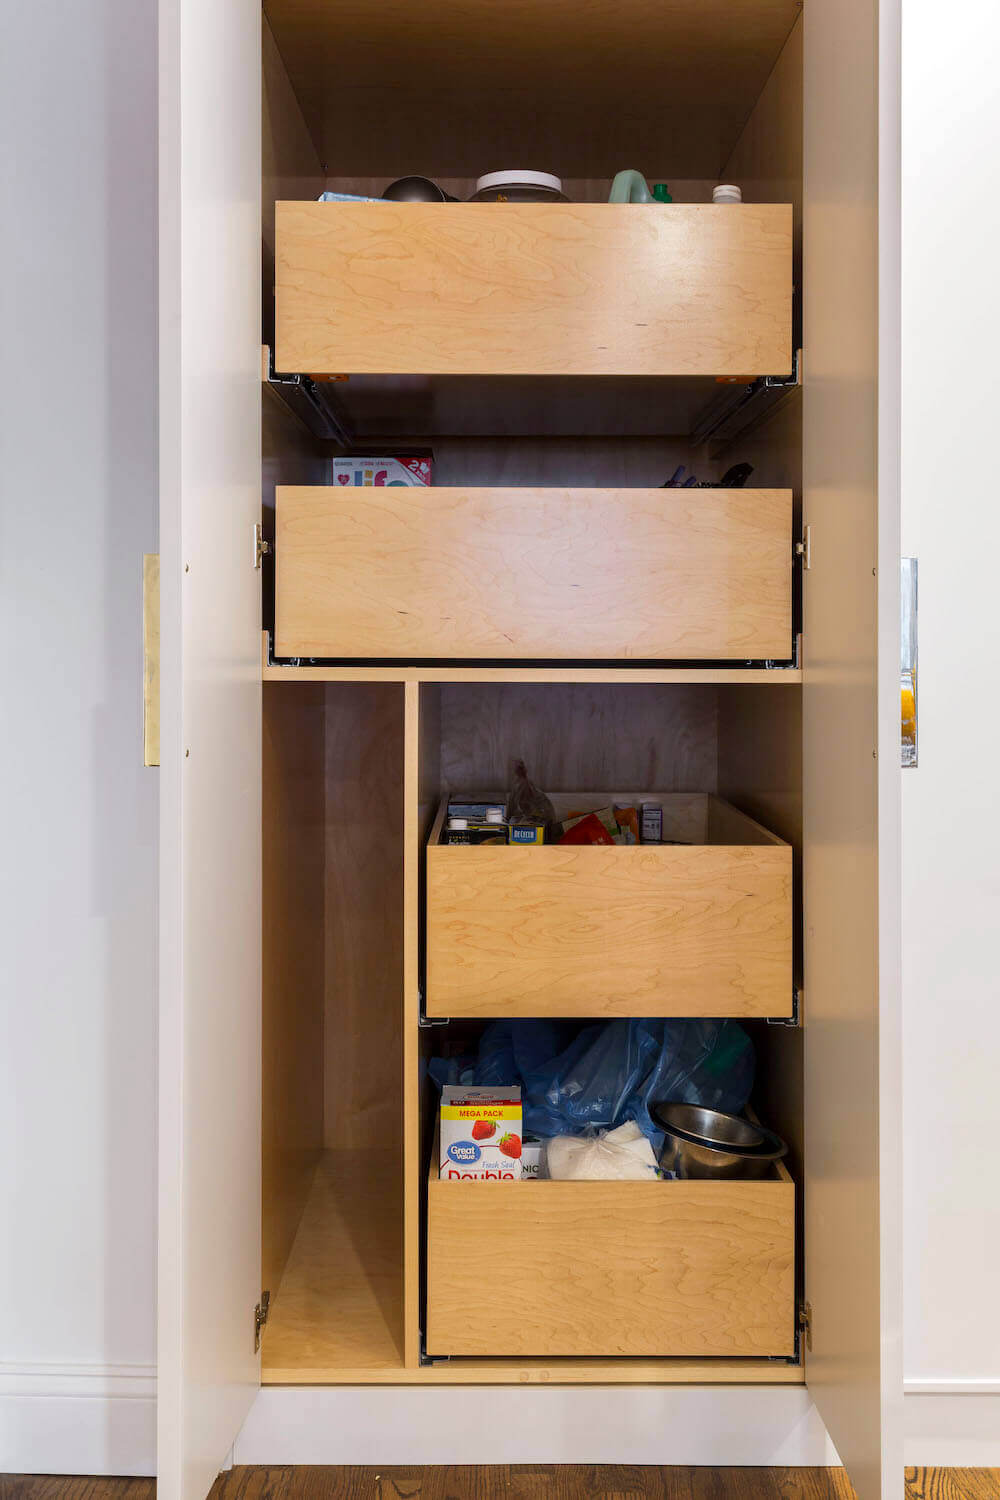 Image of an open kitchen cabinet with wooden pull-out drawers